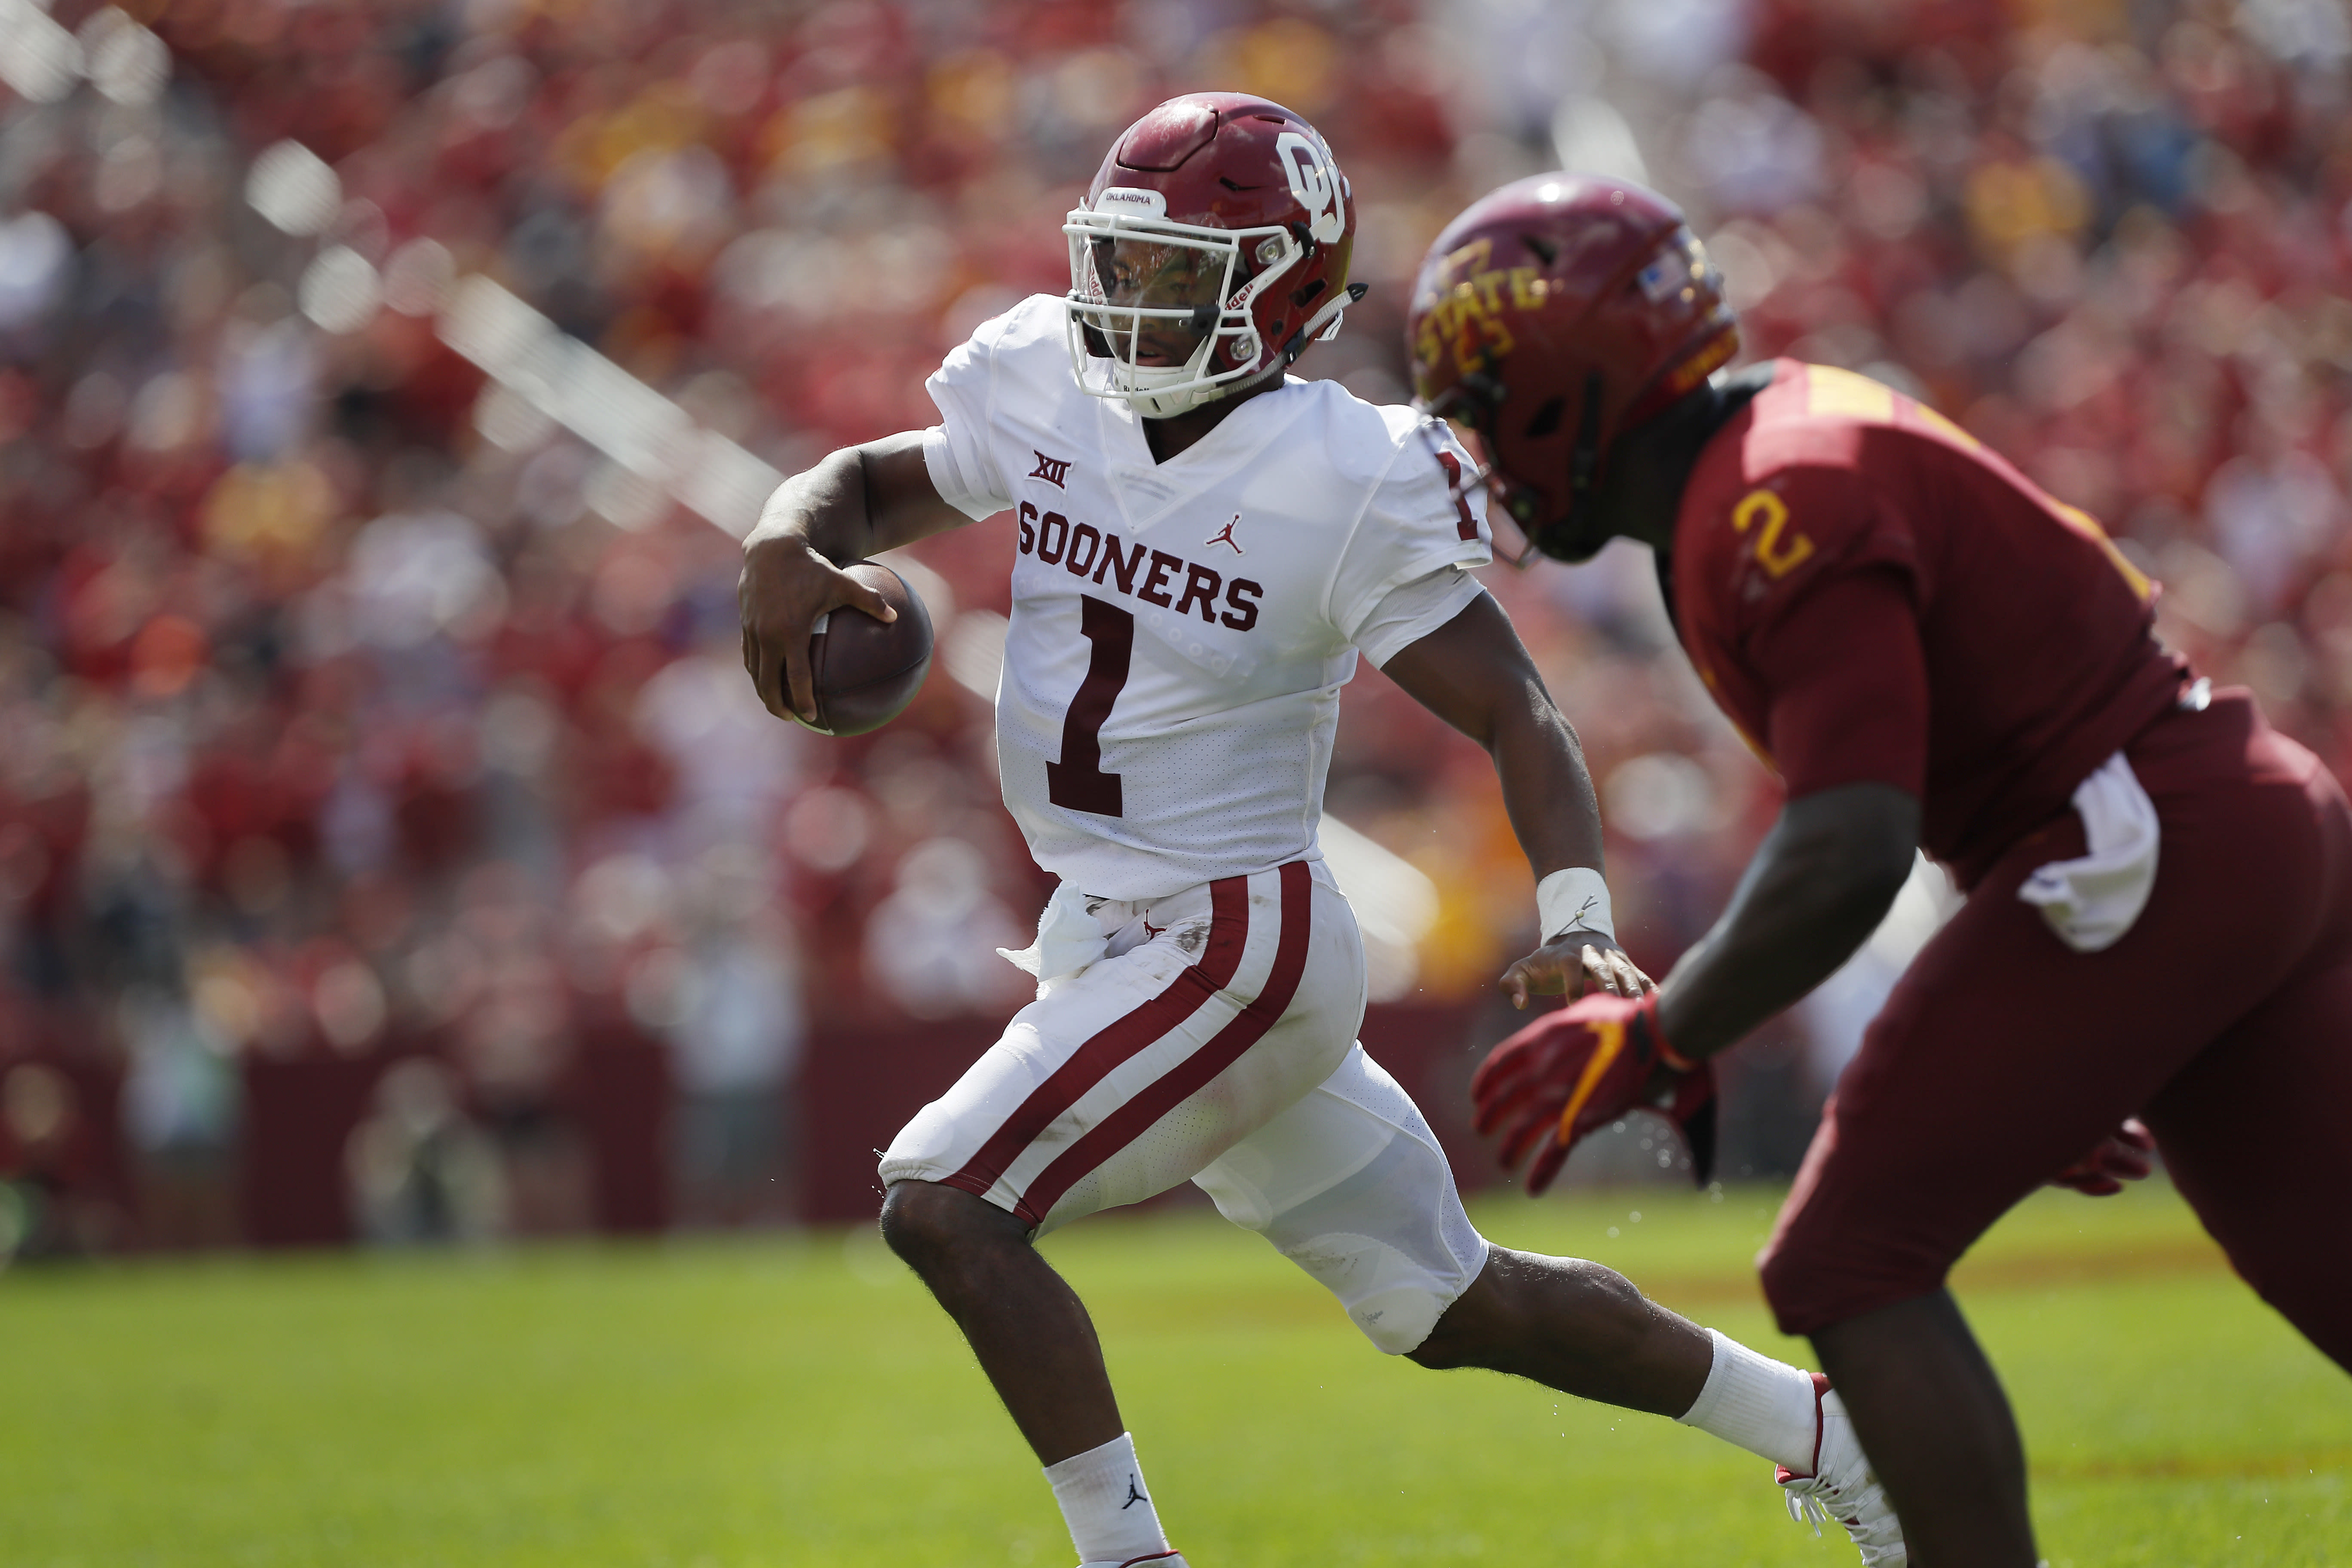 Kyler Murray's stats are eerily similar to Baker Mayfield